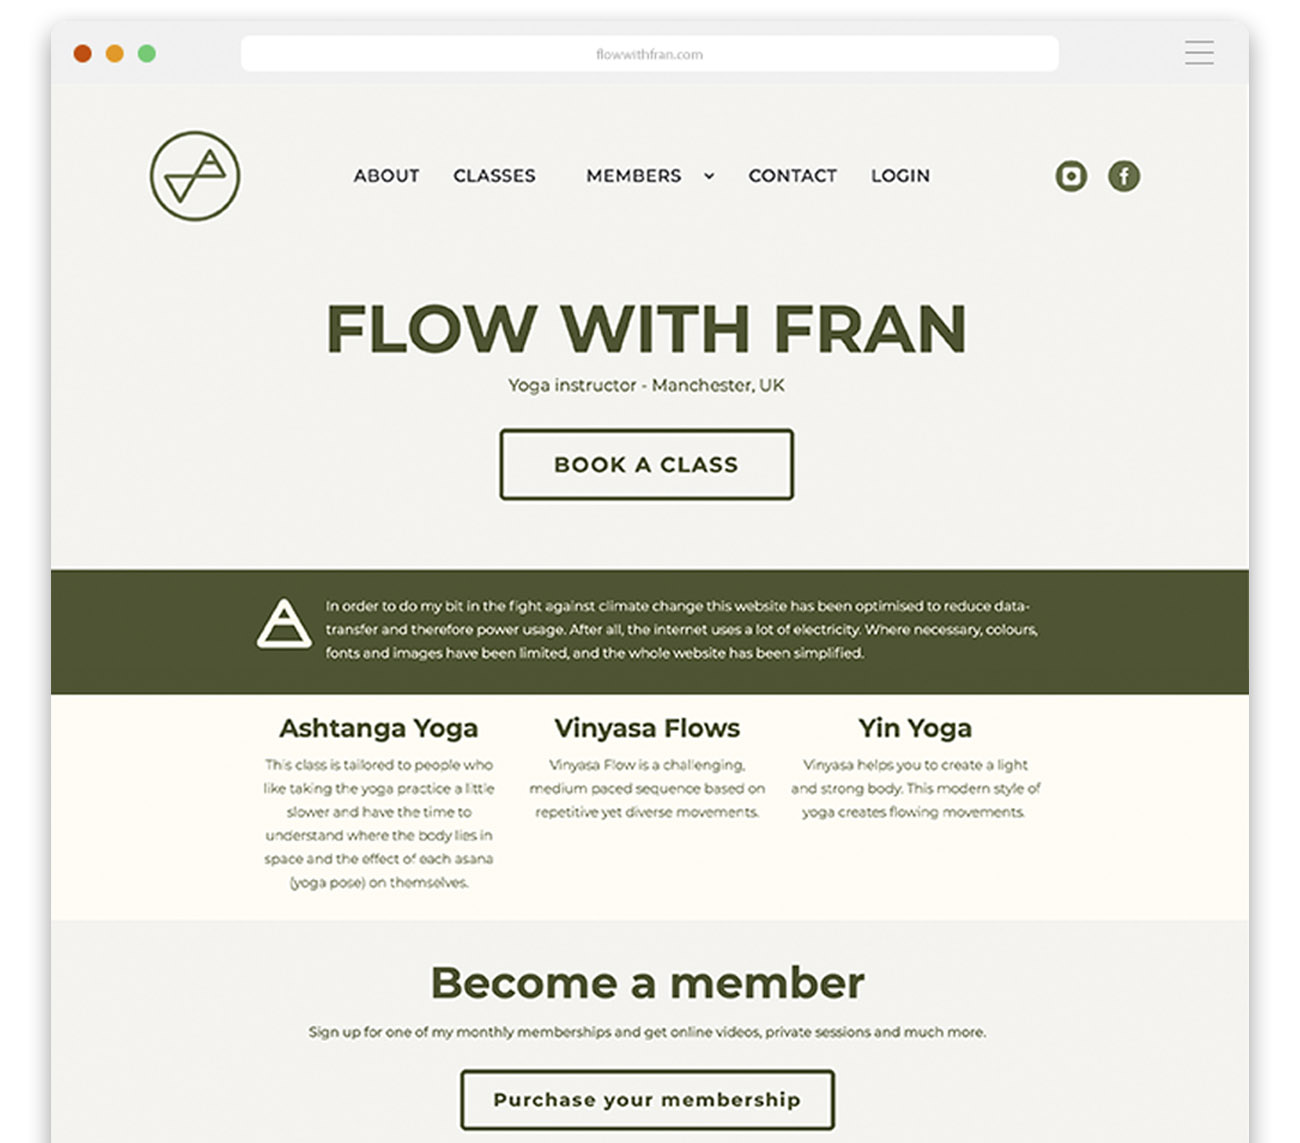 A screenshot of the Flow With Fran website design